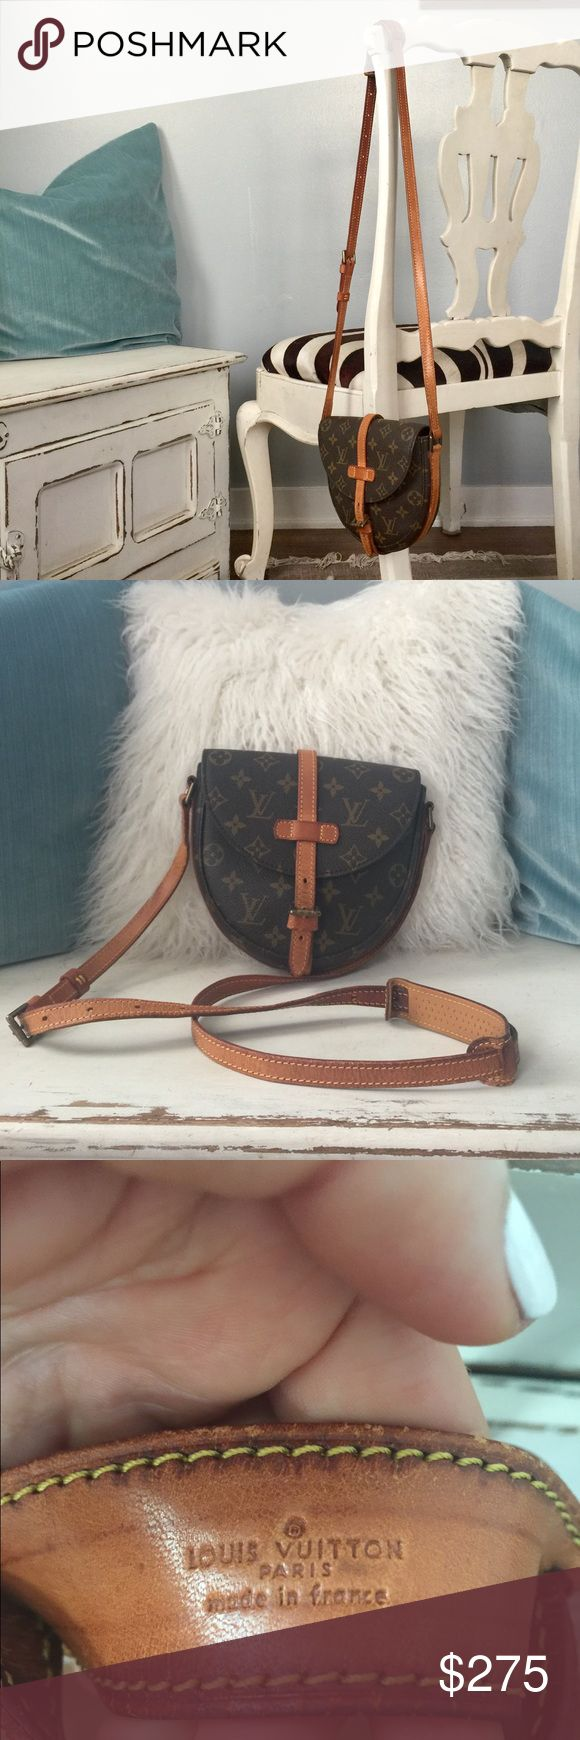 Authentic Louis Vuitton crossover small handbag Perfect for a night out in the town ,concerts, date night etc Louis Vuitton Bags Crossbody Bags